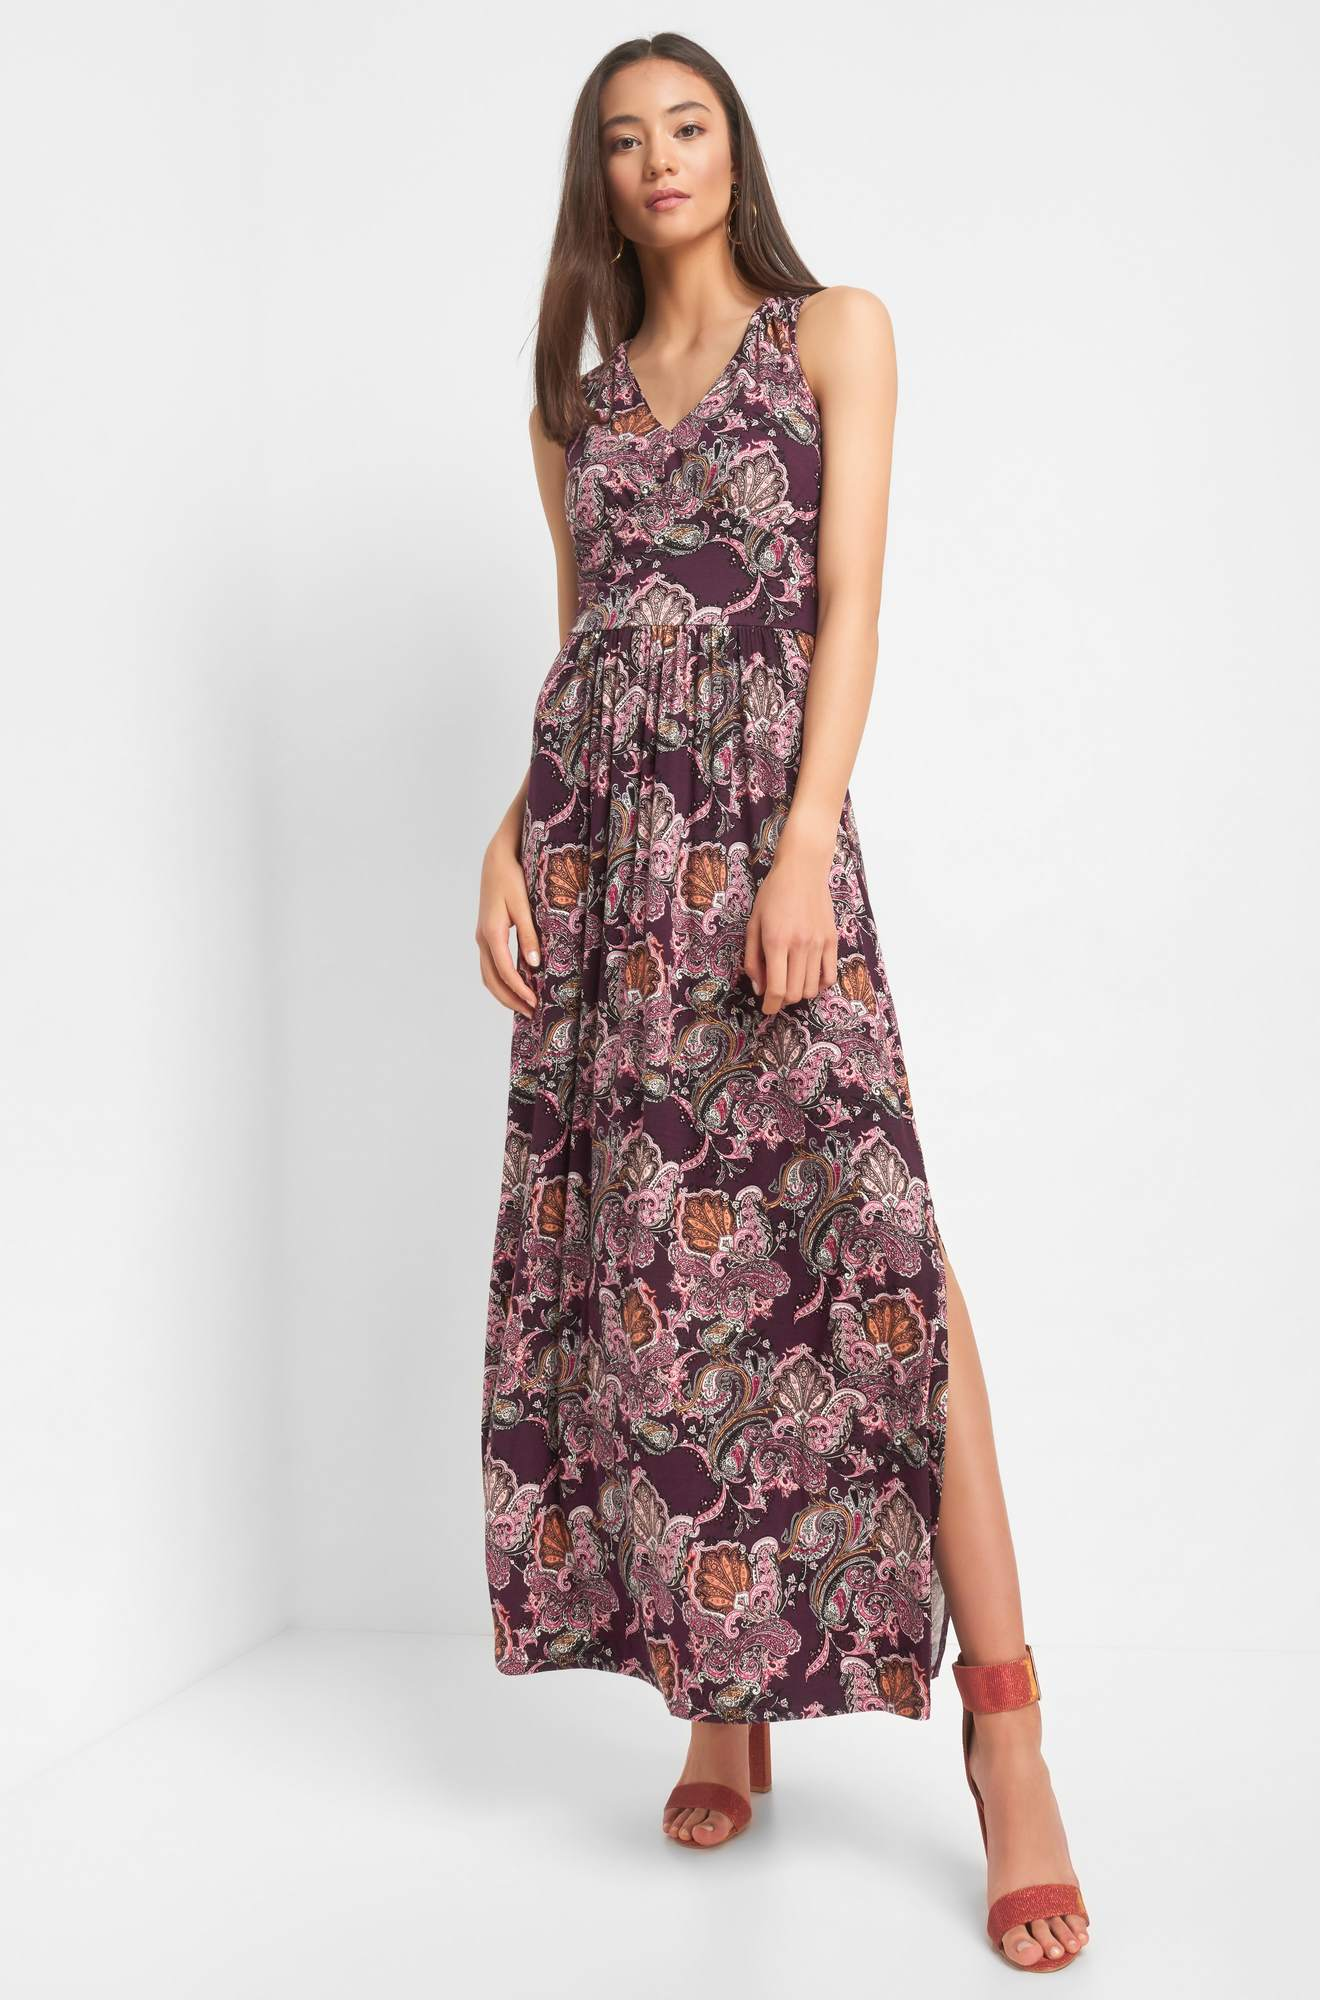 Maxikleid mit Paisley Muster